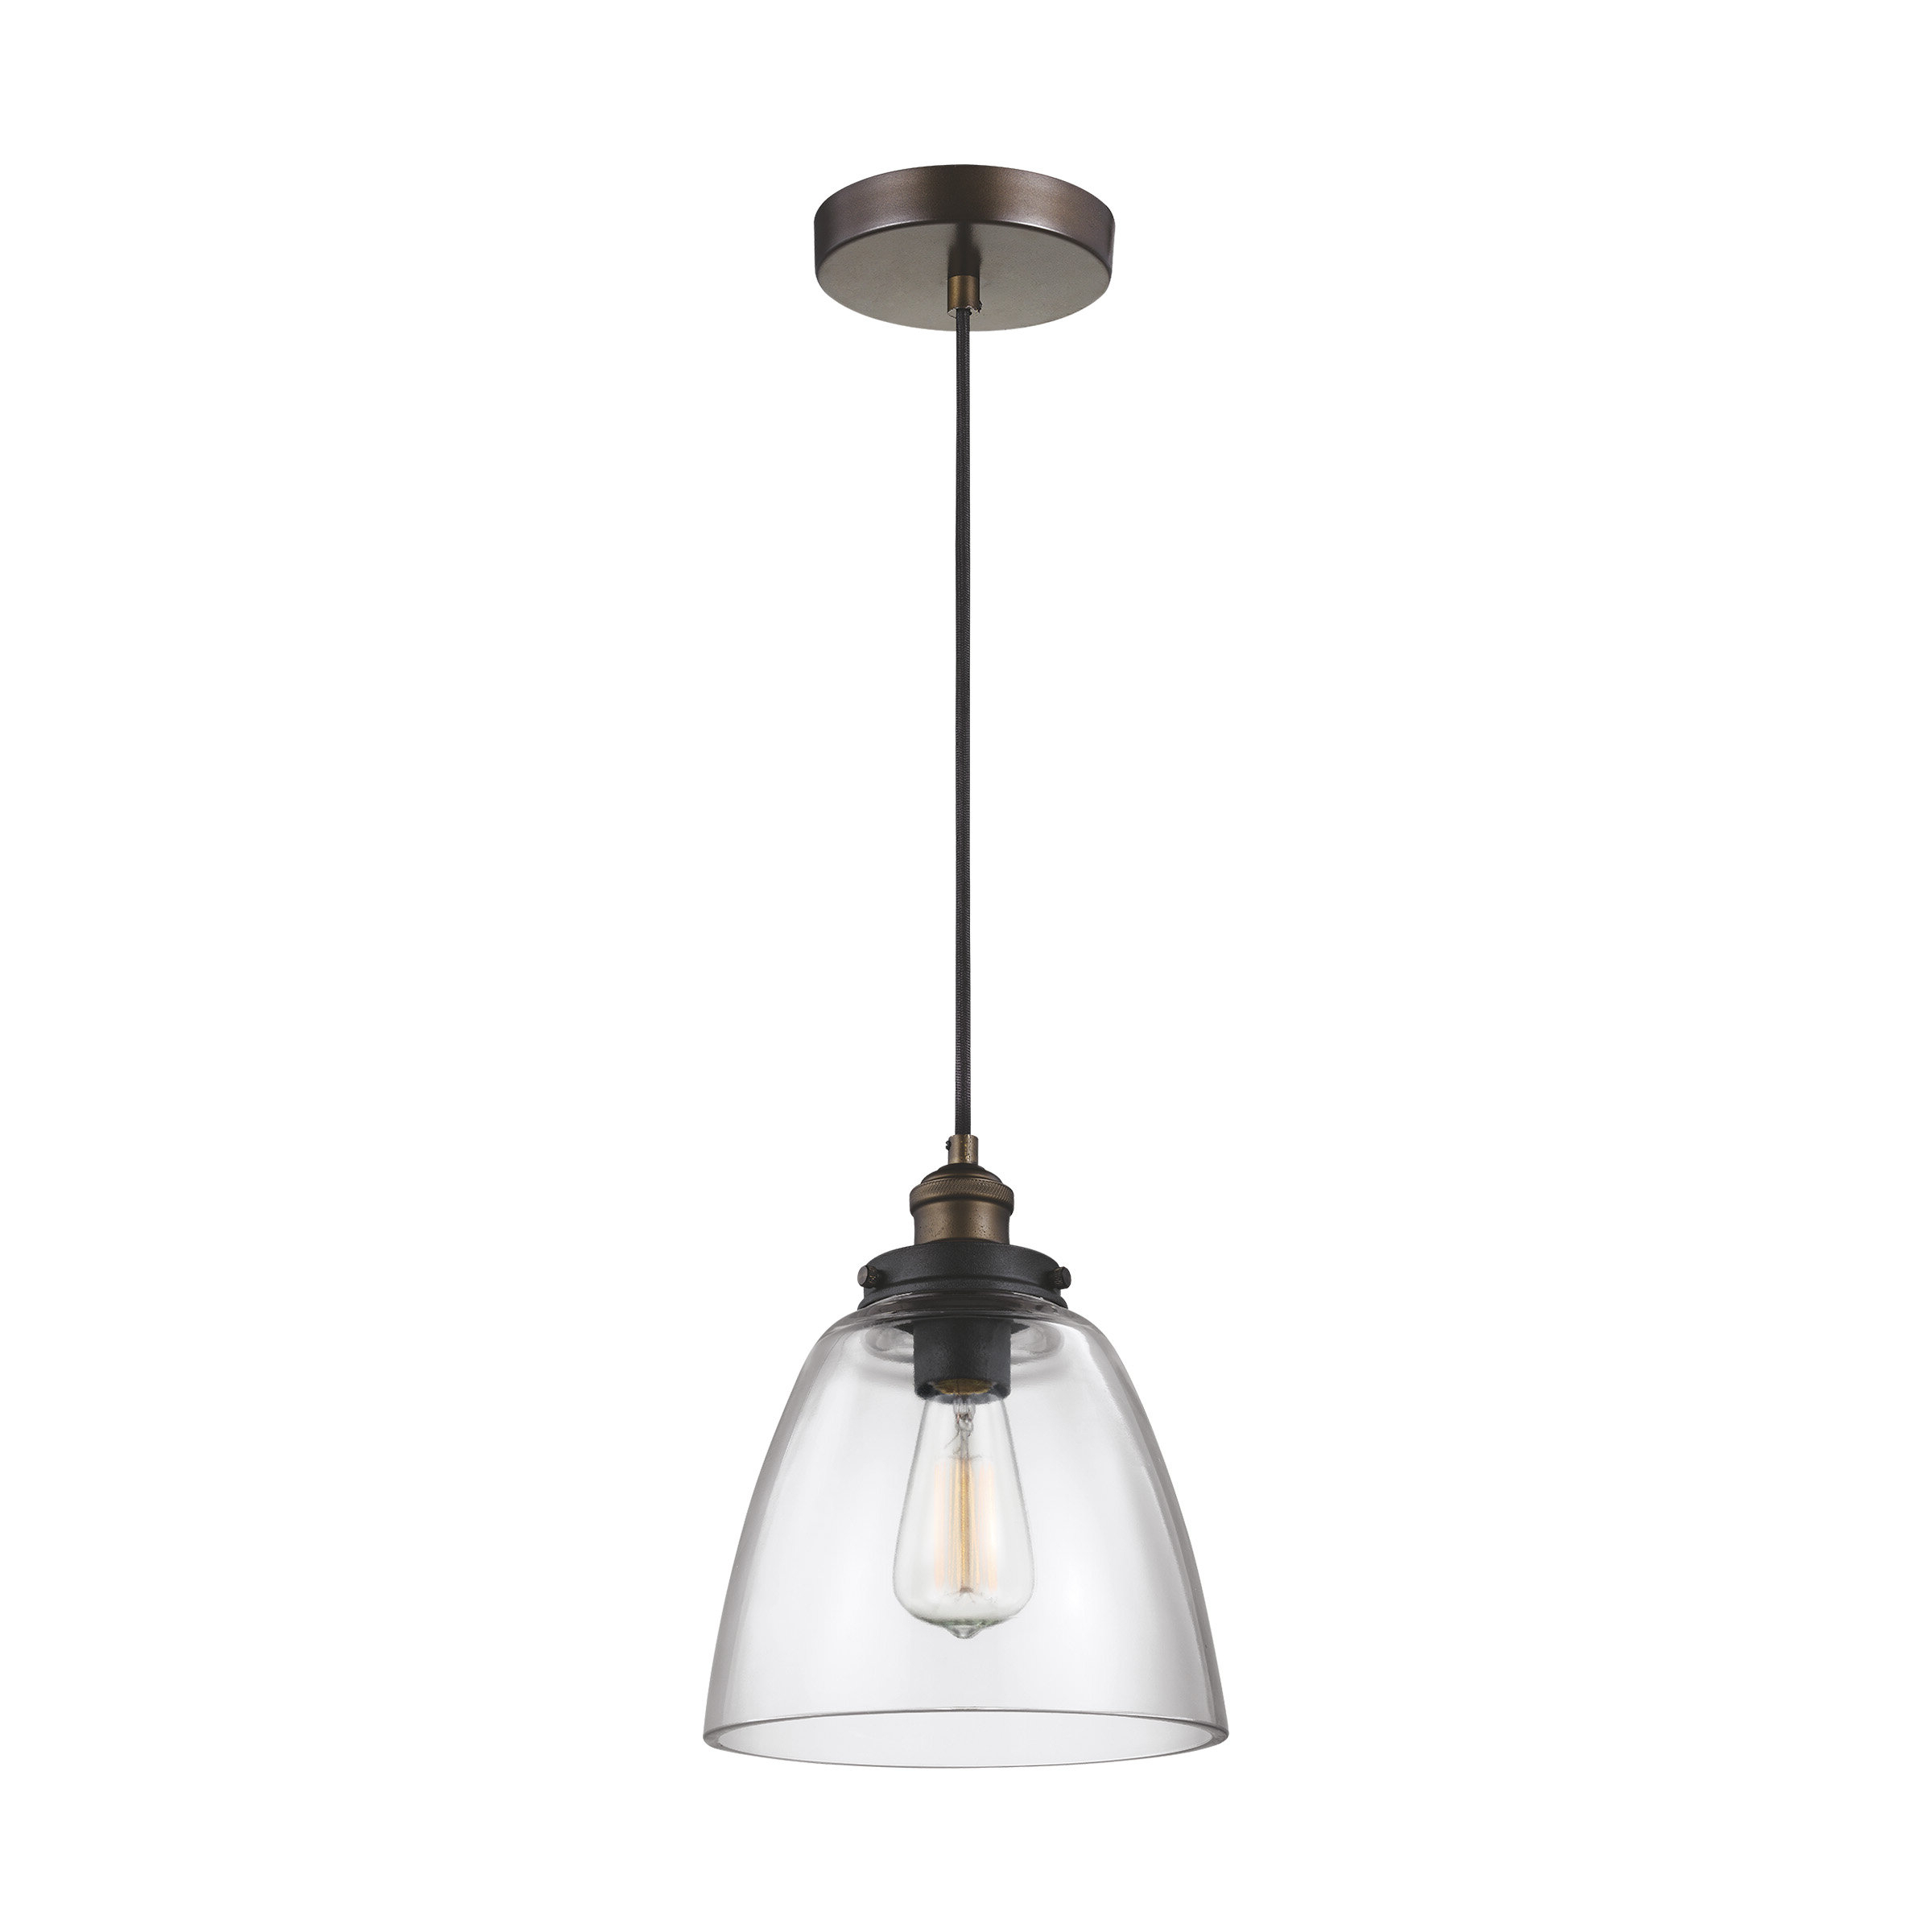 Trent Austin Design Bedford 1 Light Single Cone Pendant For Most Recently Released Goldie 1 Light Single Bell Pendants (View 14 of 20)